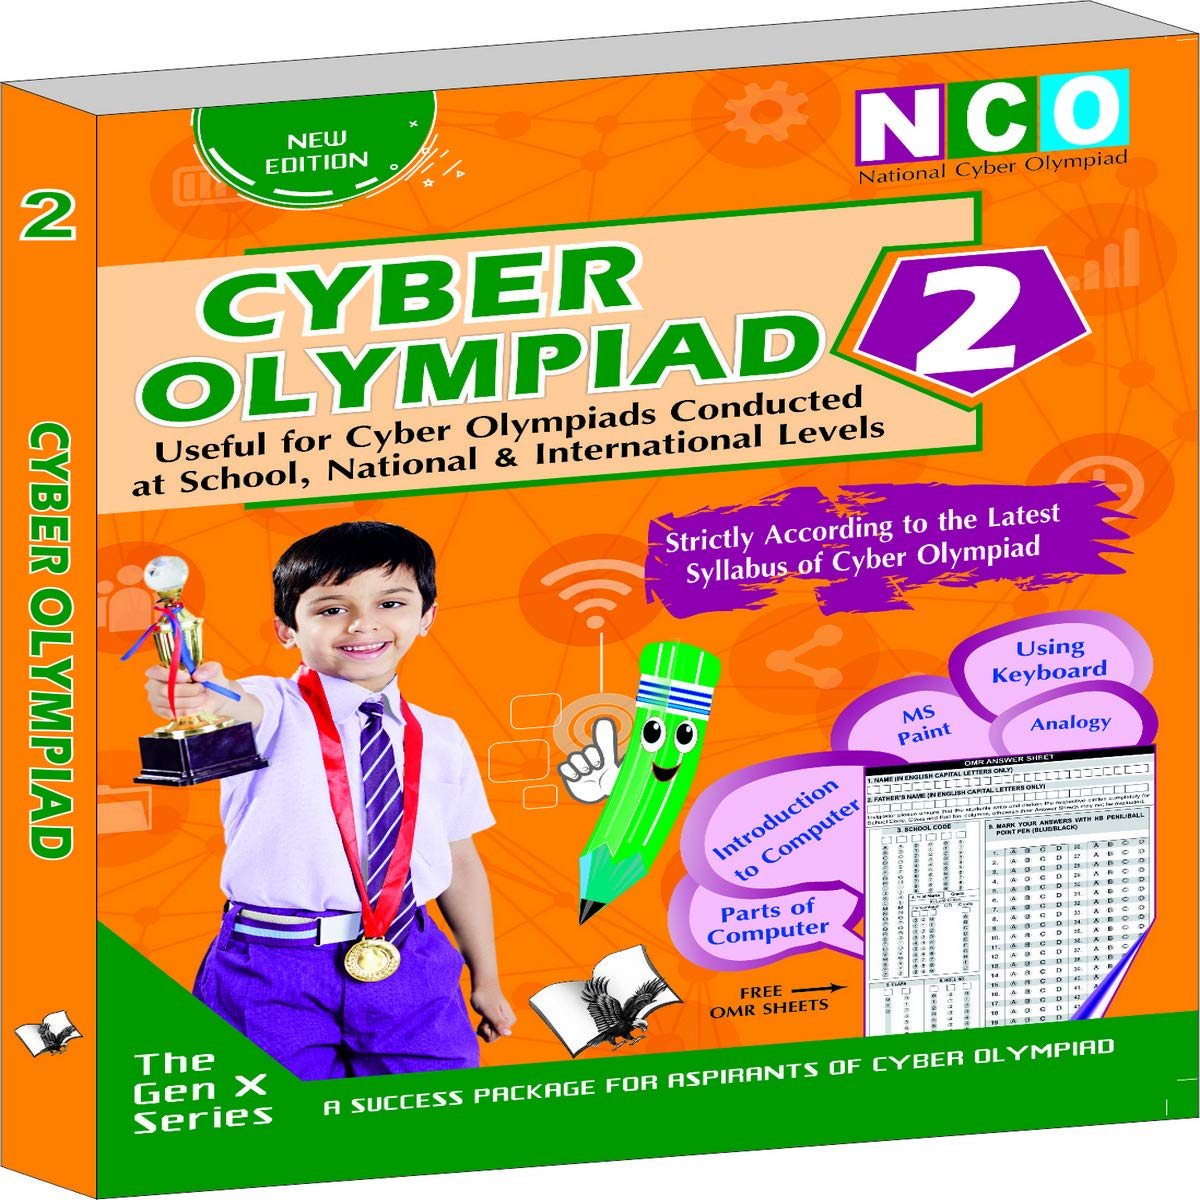 Cyber Olympiad 2 (Useful for Cyber Olympiads Conducted at School, National & International Levels)